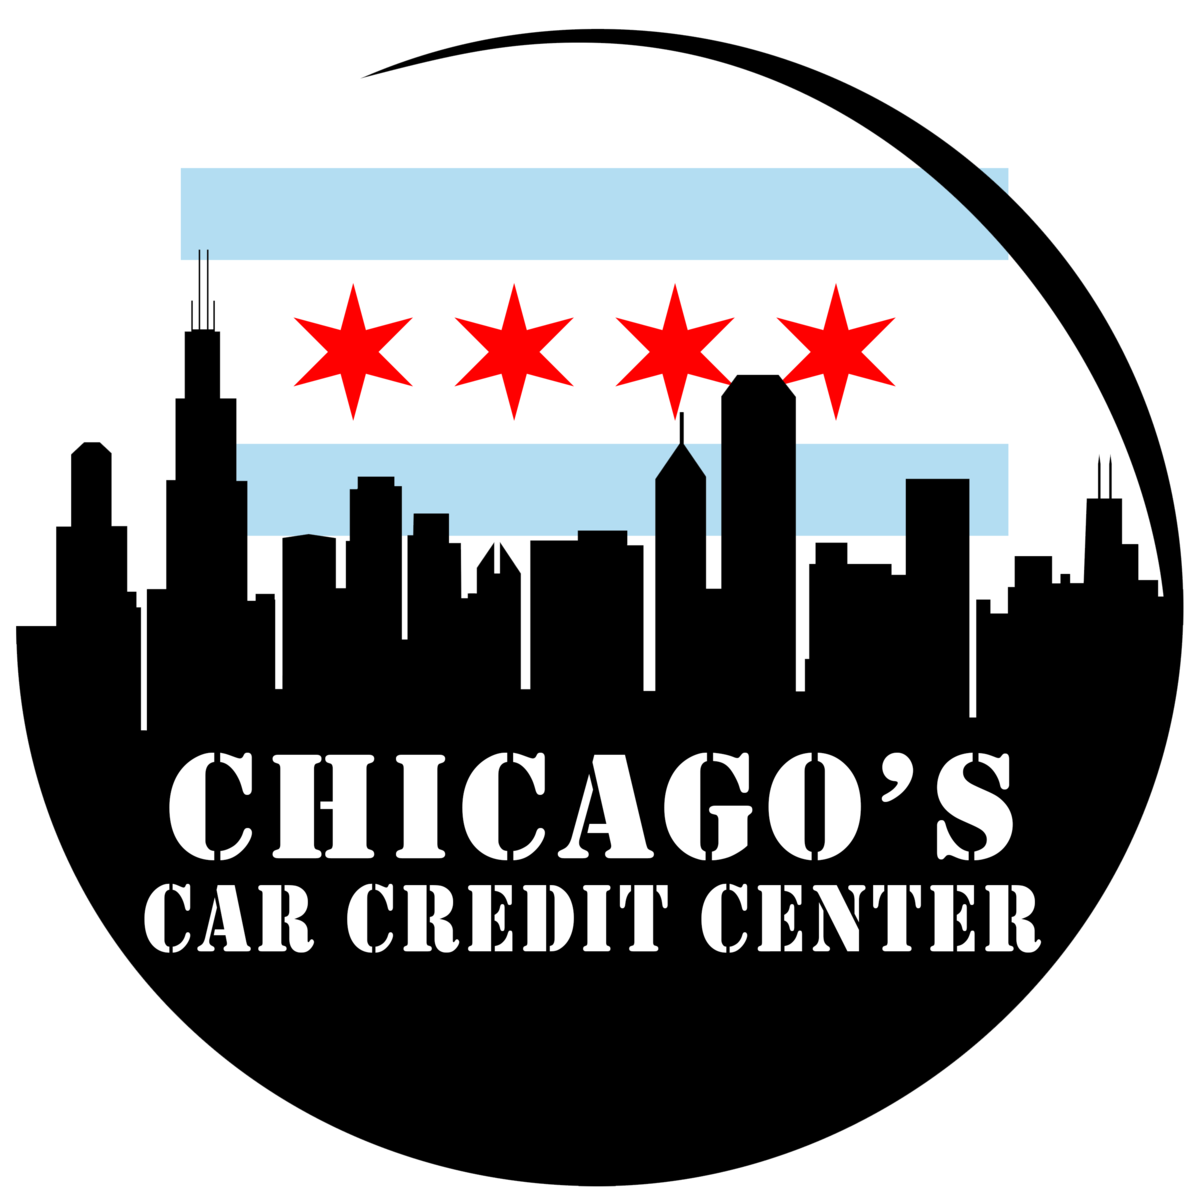 Used Audi In Chicago: Chicagos Car Credit Center